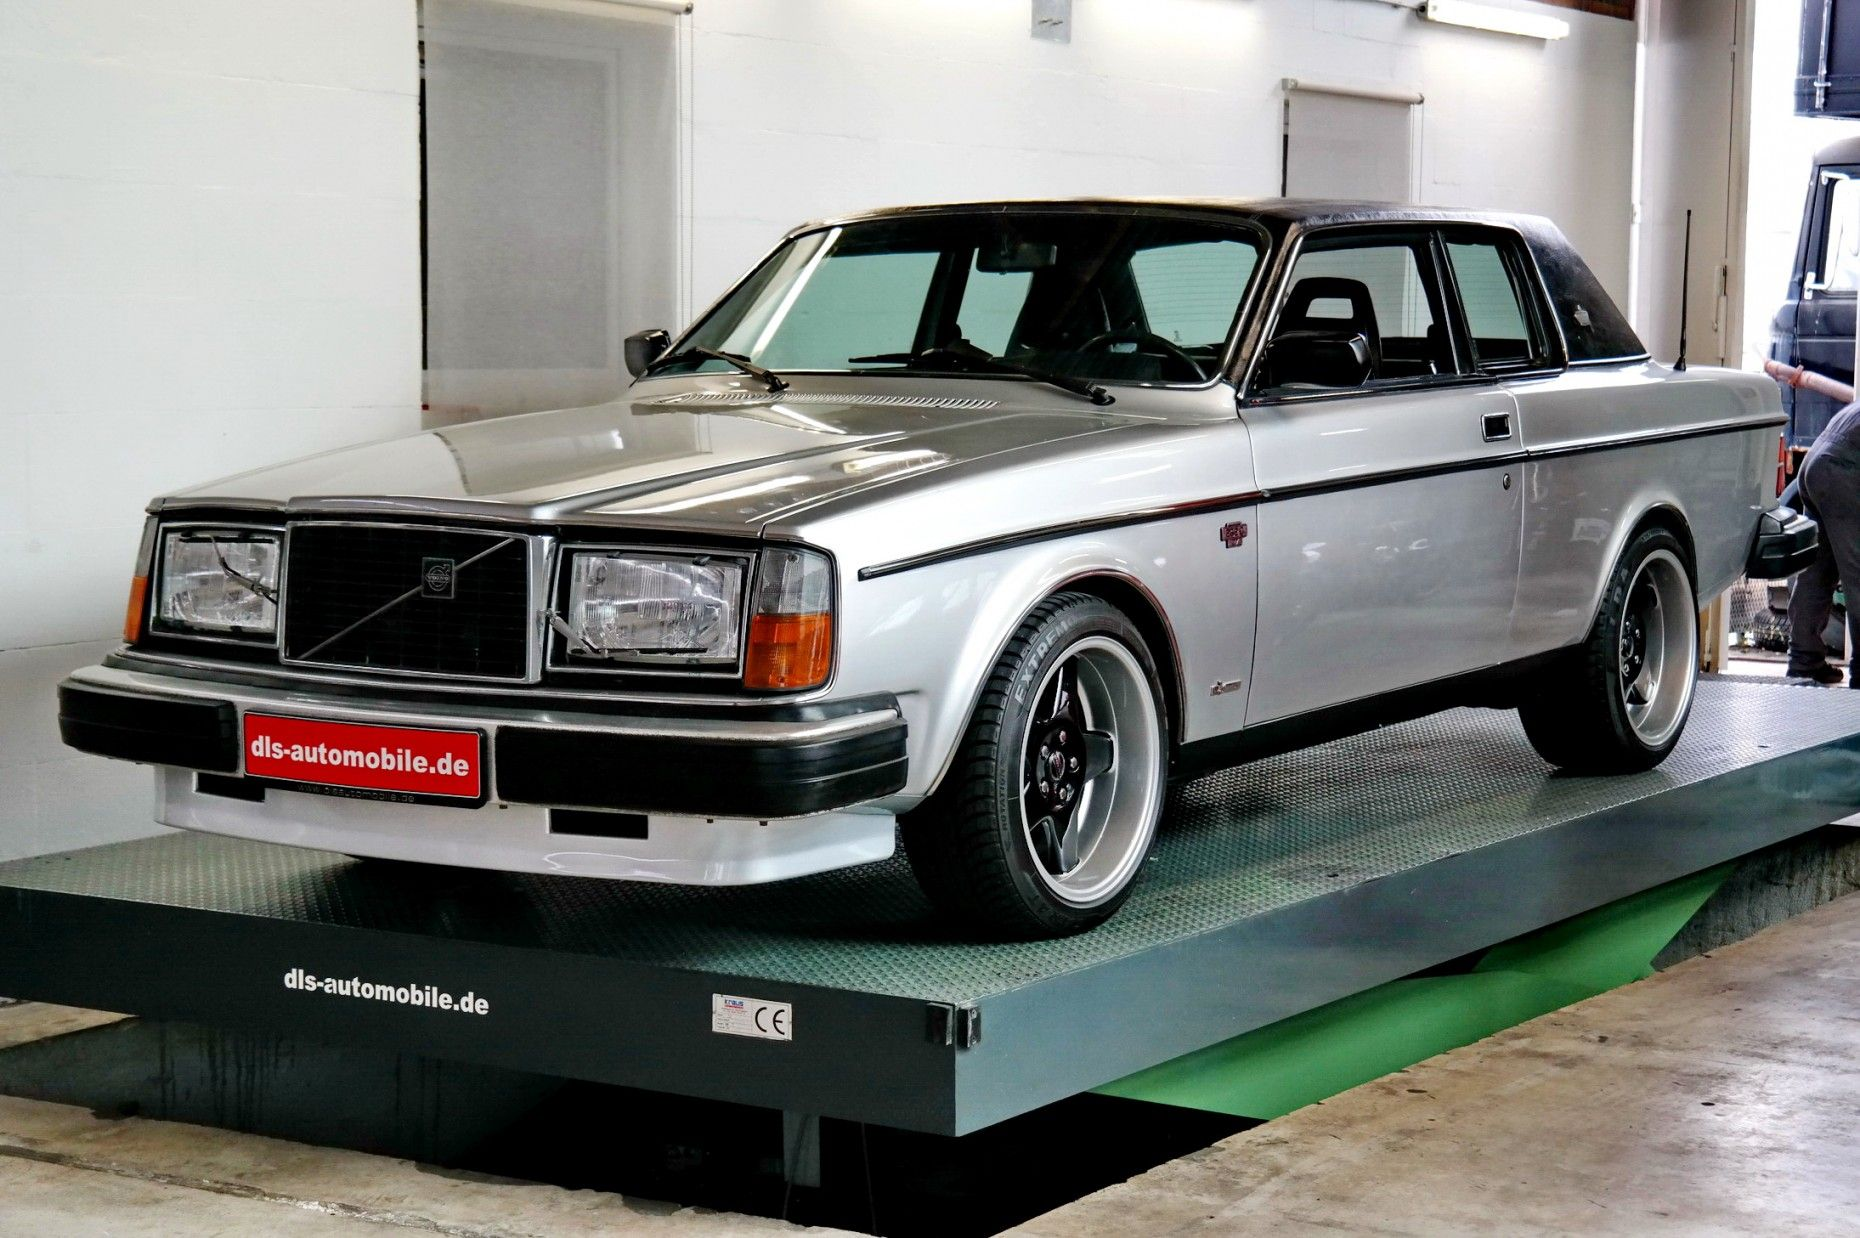 volvo 240 turbo more information cars pinterest volvo 240 volvo and cars. Black Bedroom Furniture Sets. Home Design Ideas